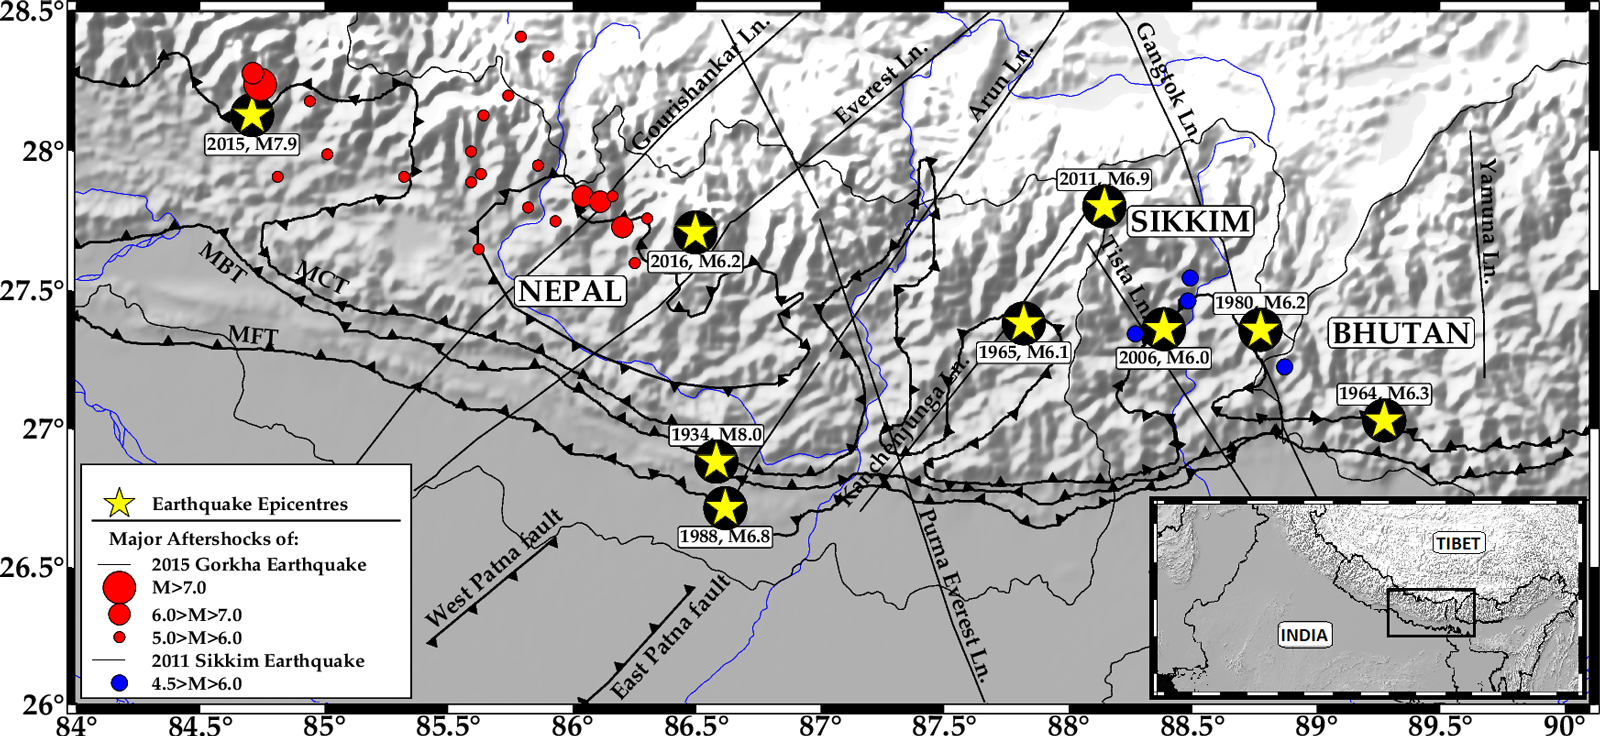 Earthquake map of Sikkim and the adjoining Himalaya region